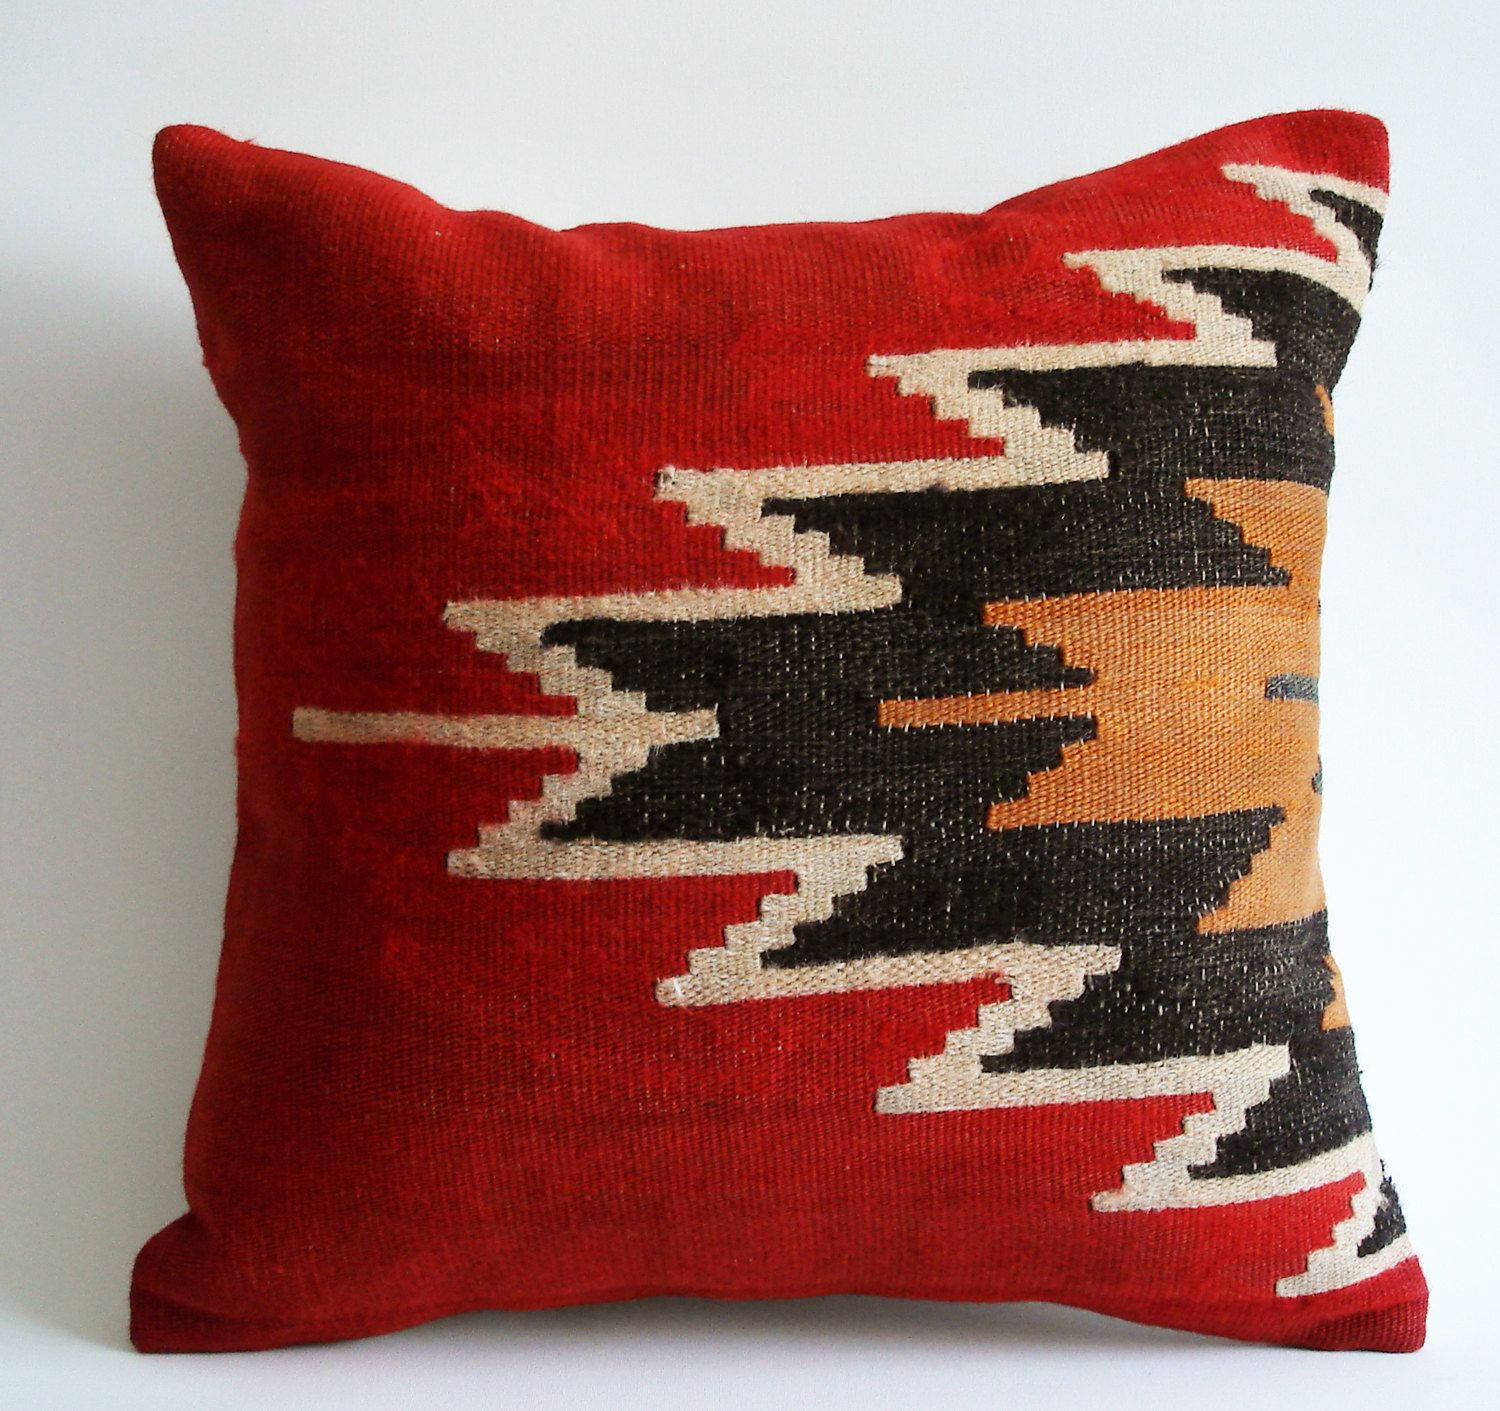 Weird Rugs wicked & weird: sukan kilim pillows | native american home